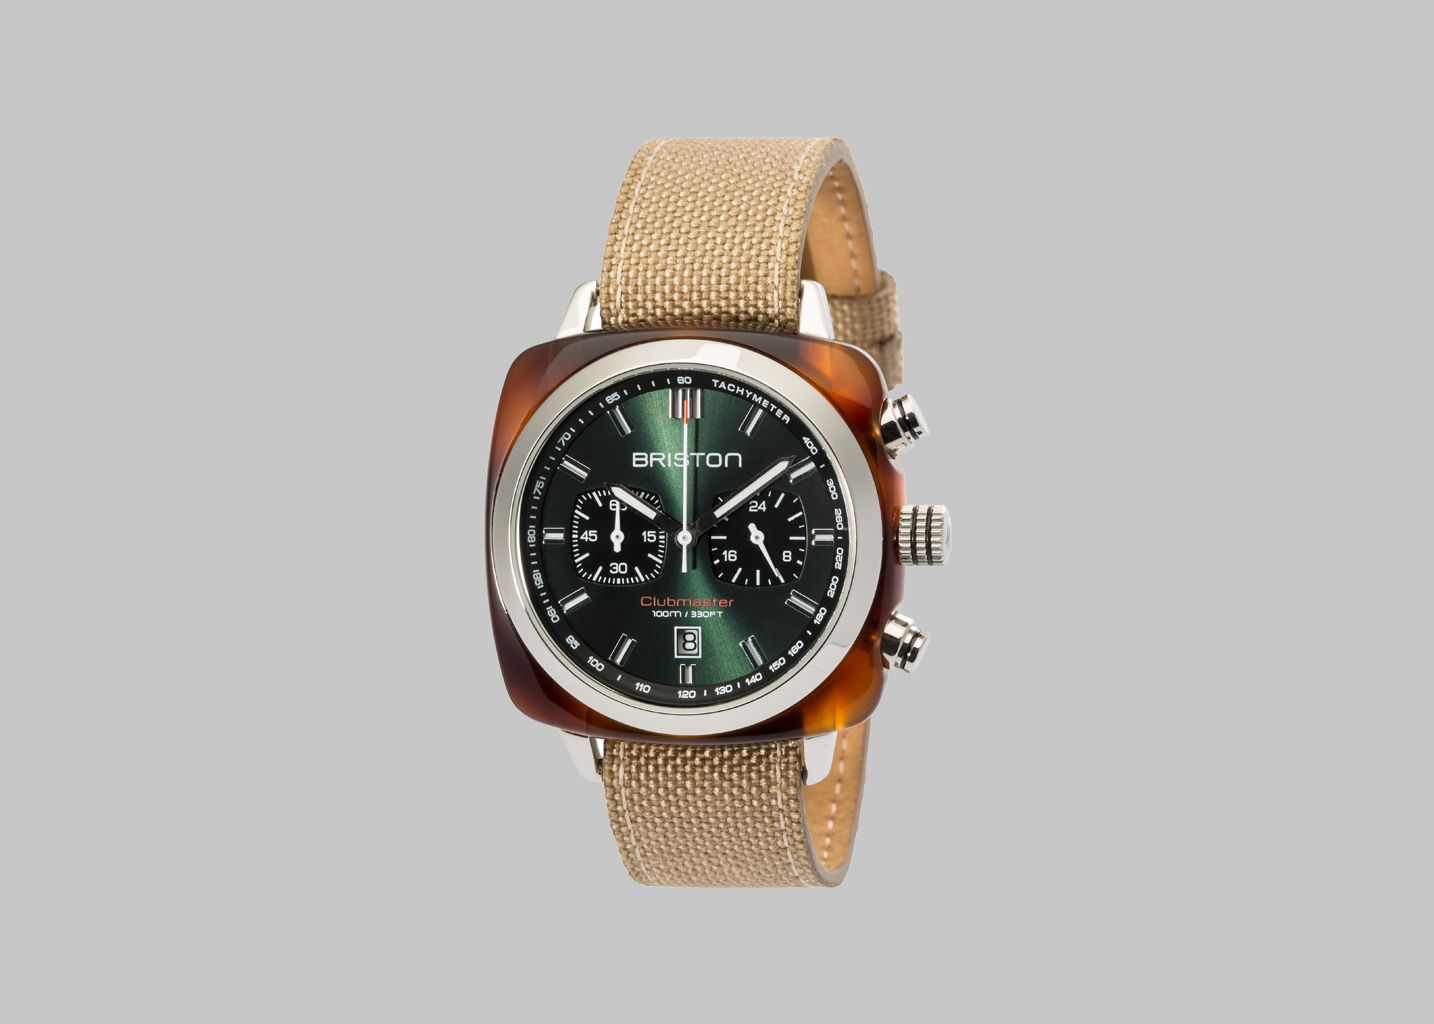 Clubmaster Sport Watch Briston Sand L'Exception